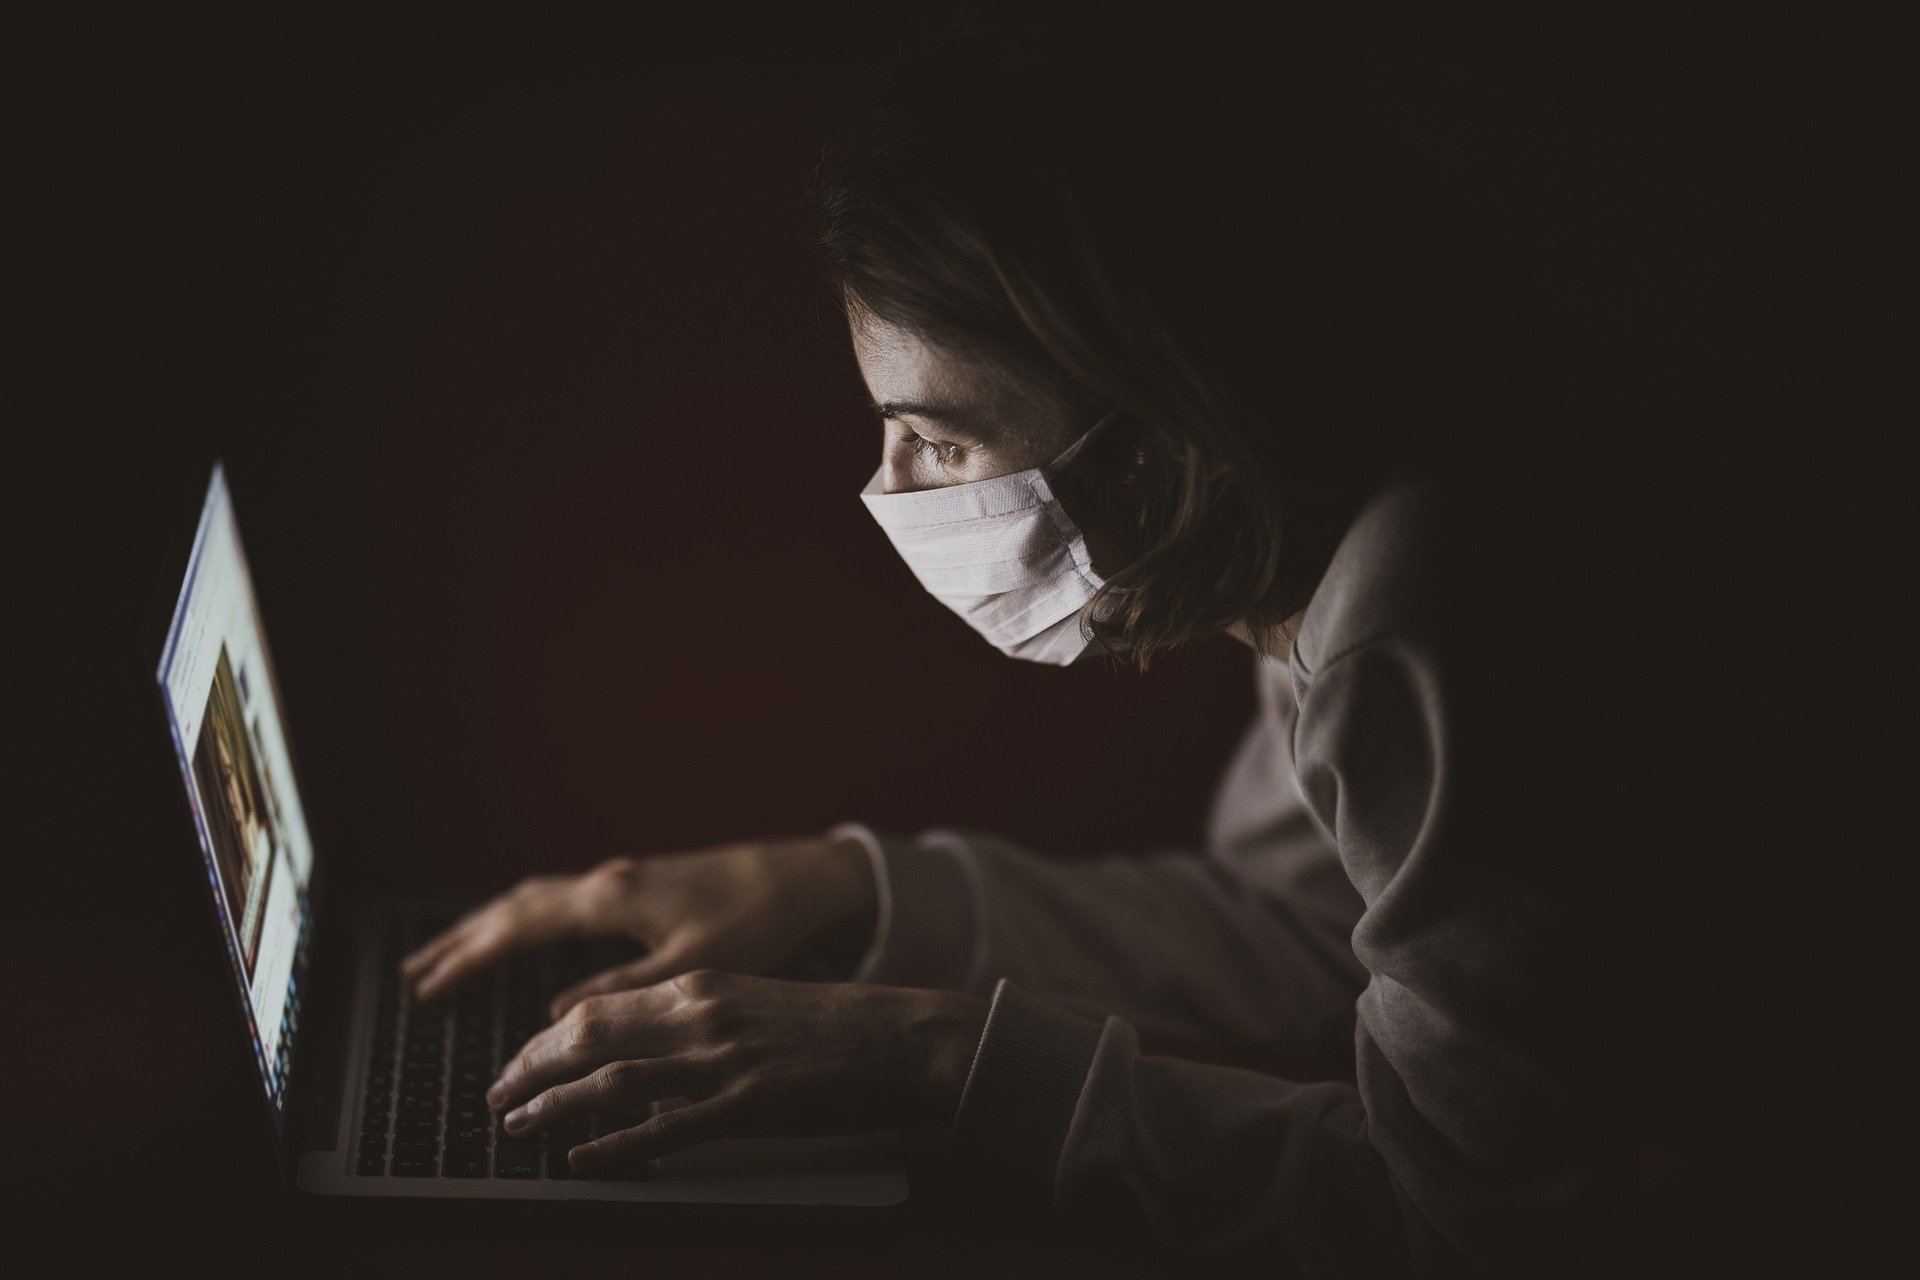 Confronting the Scamming Pandemic